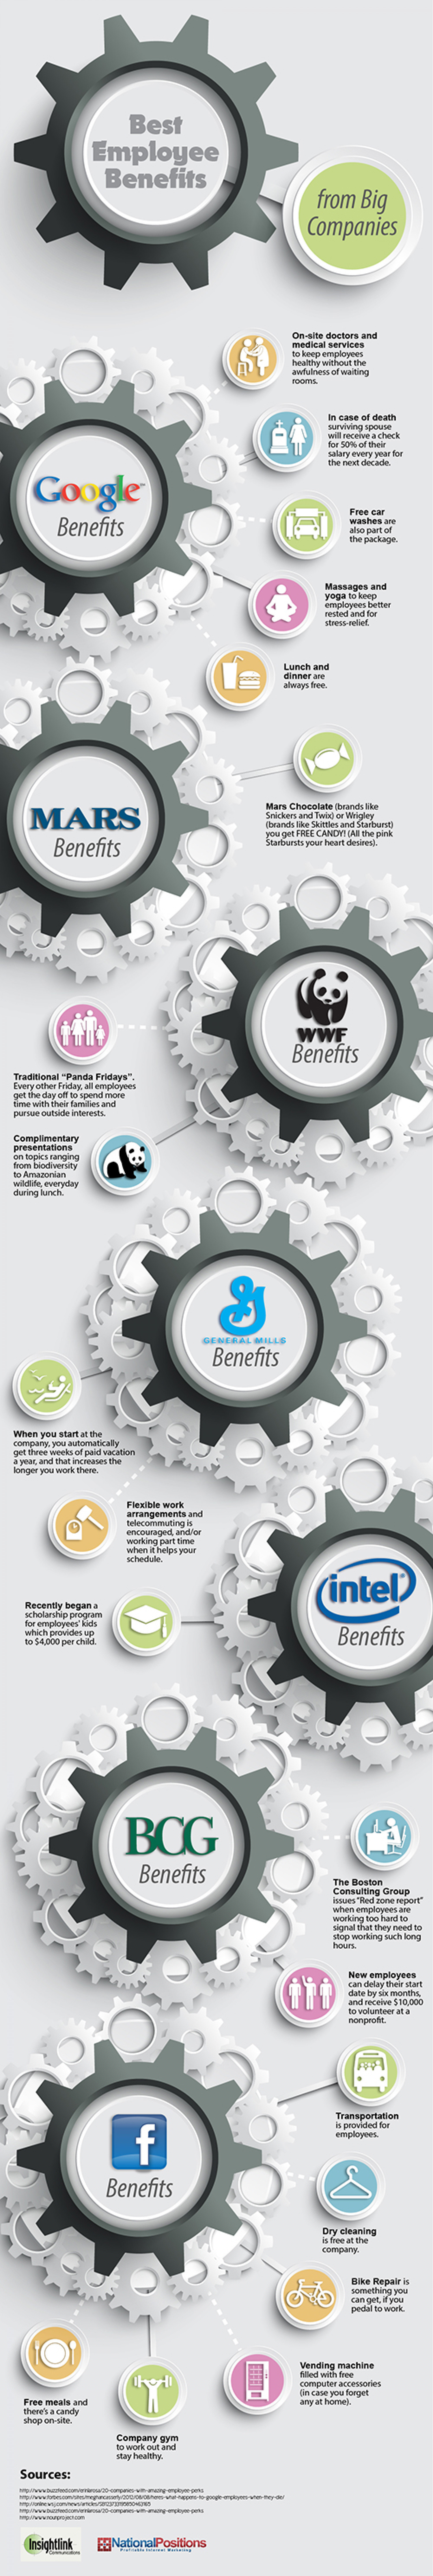 Best Employee Benefits From Big Companies Infographic